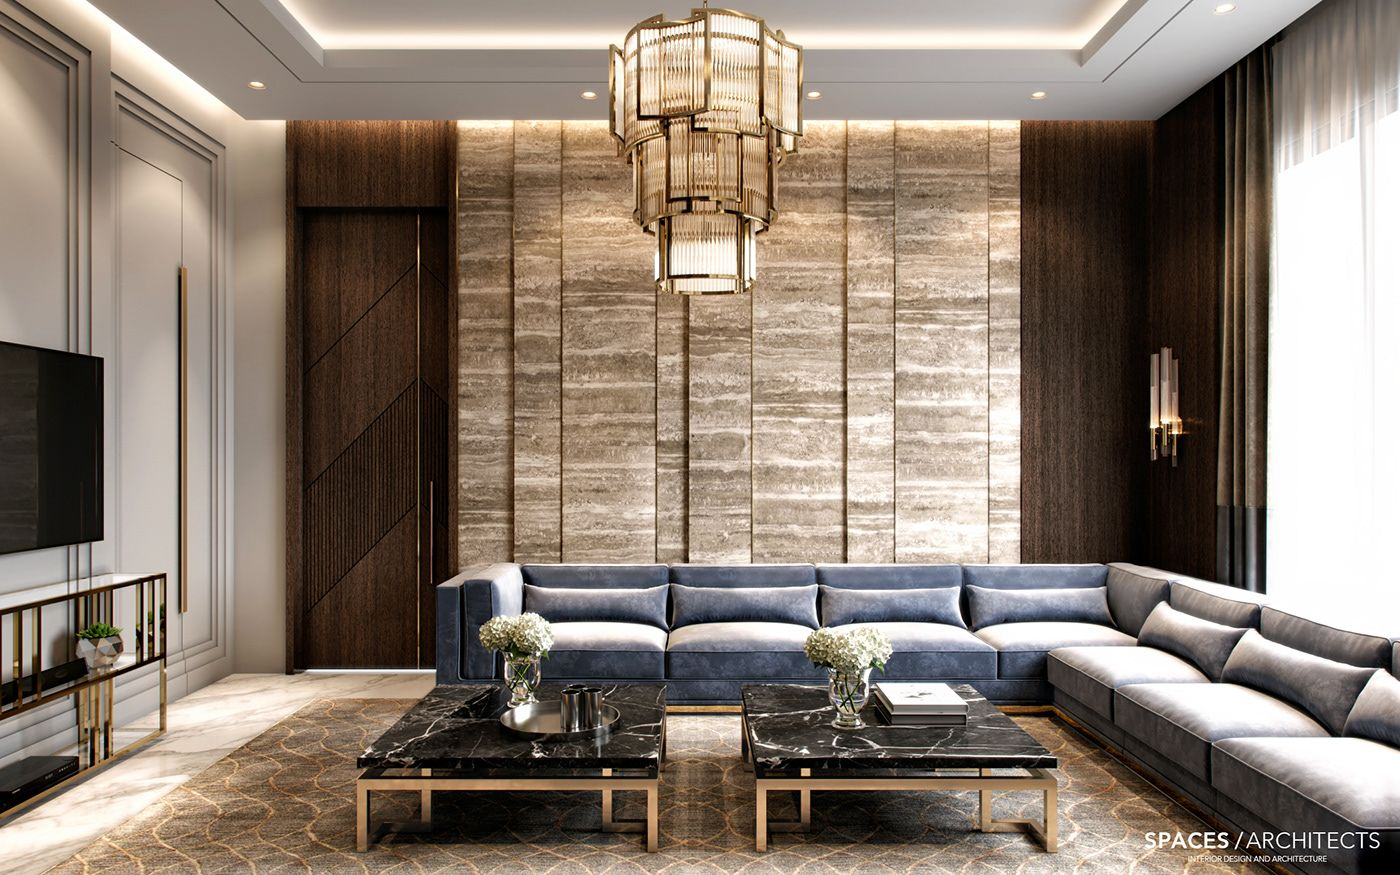 In Luxury Interior Design It Is All About Creating An Ambience